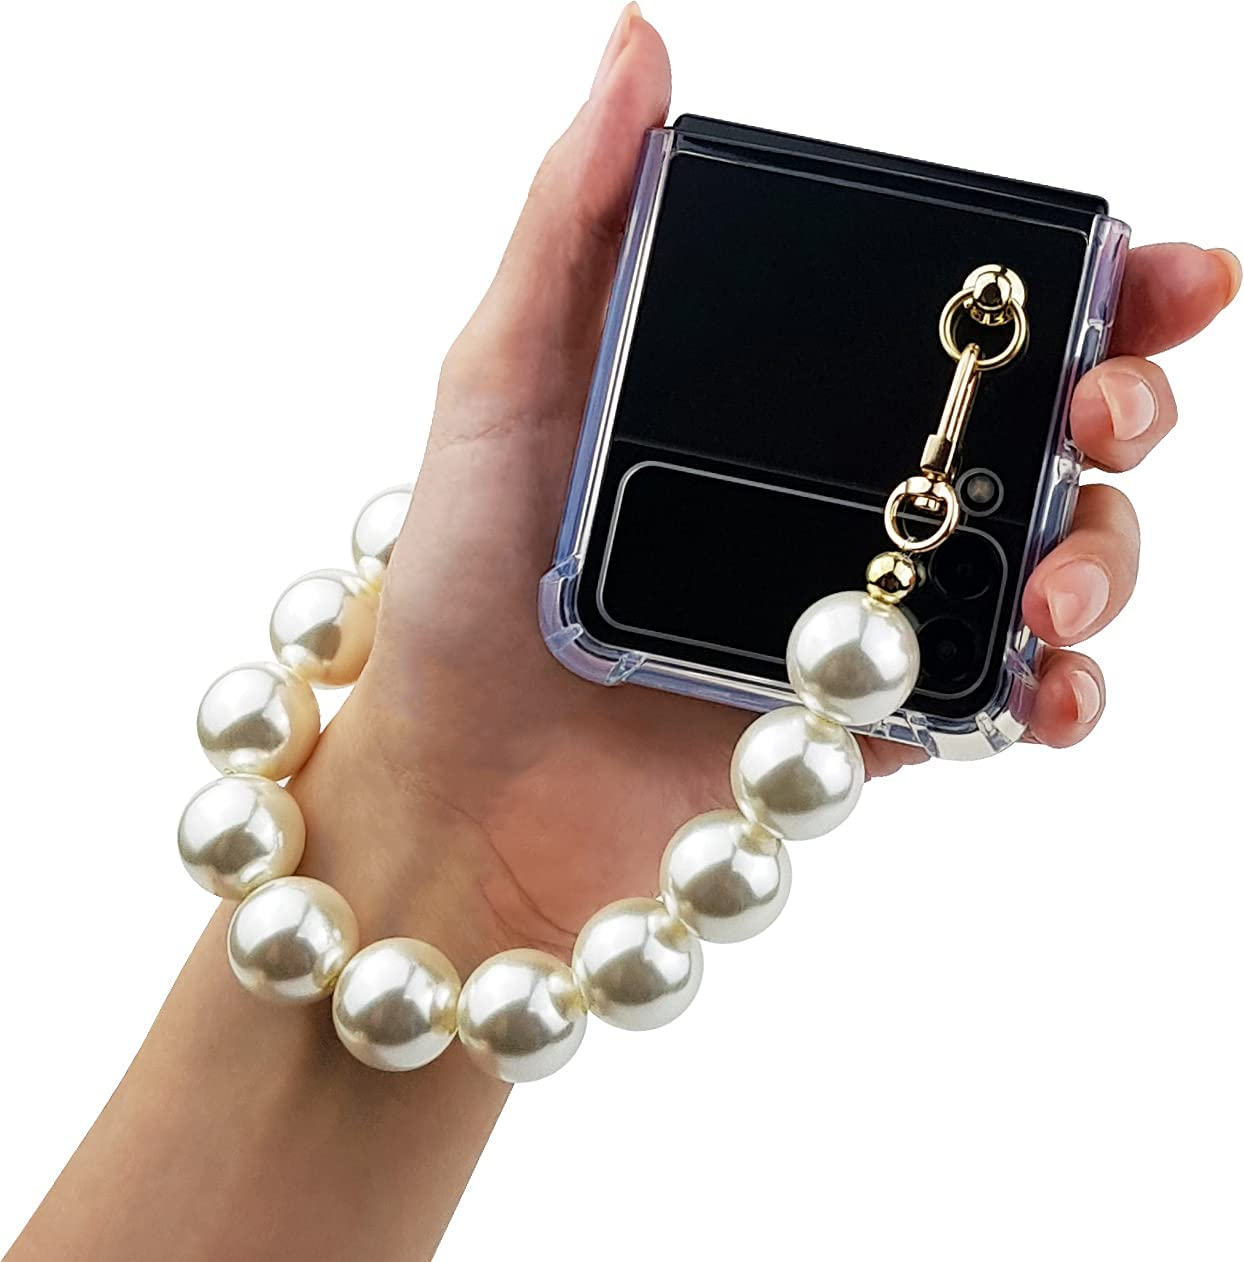 Qoosan Bling Beads Wrist Strap Clear Cover for Samsung Galaxy Z Flip 3 Case 5G (2021) for Women, Pearl